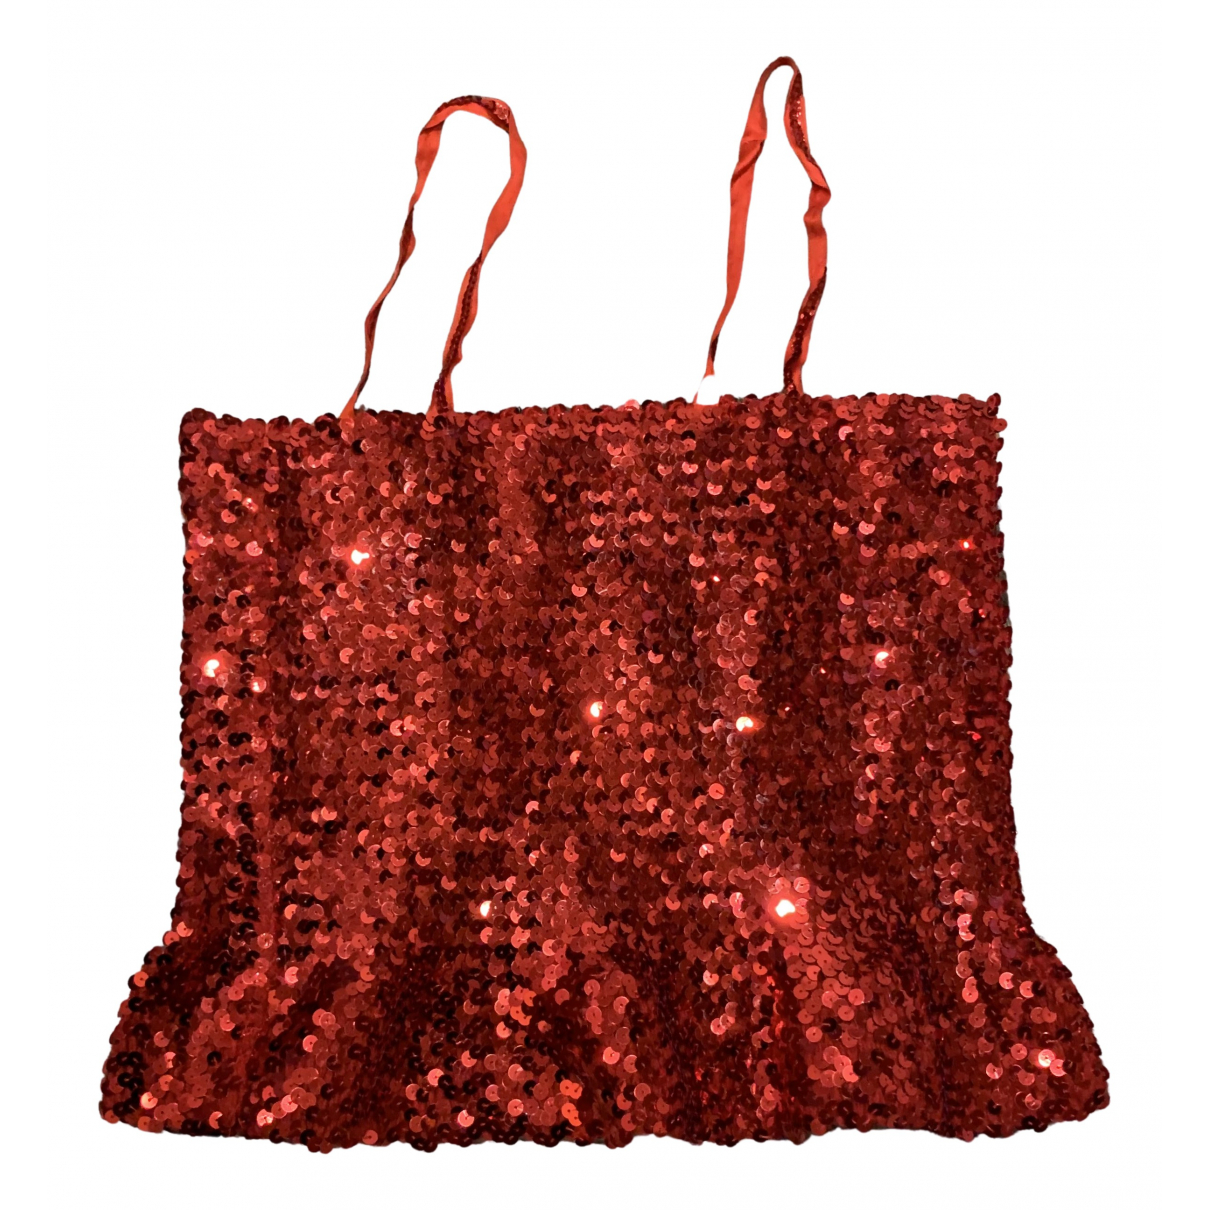 Non Signé / Unsigned N Red Glitter  top for Women One Size IT